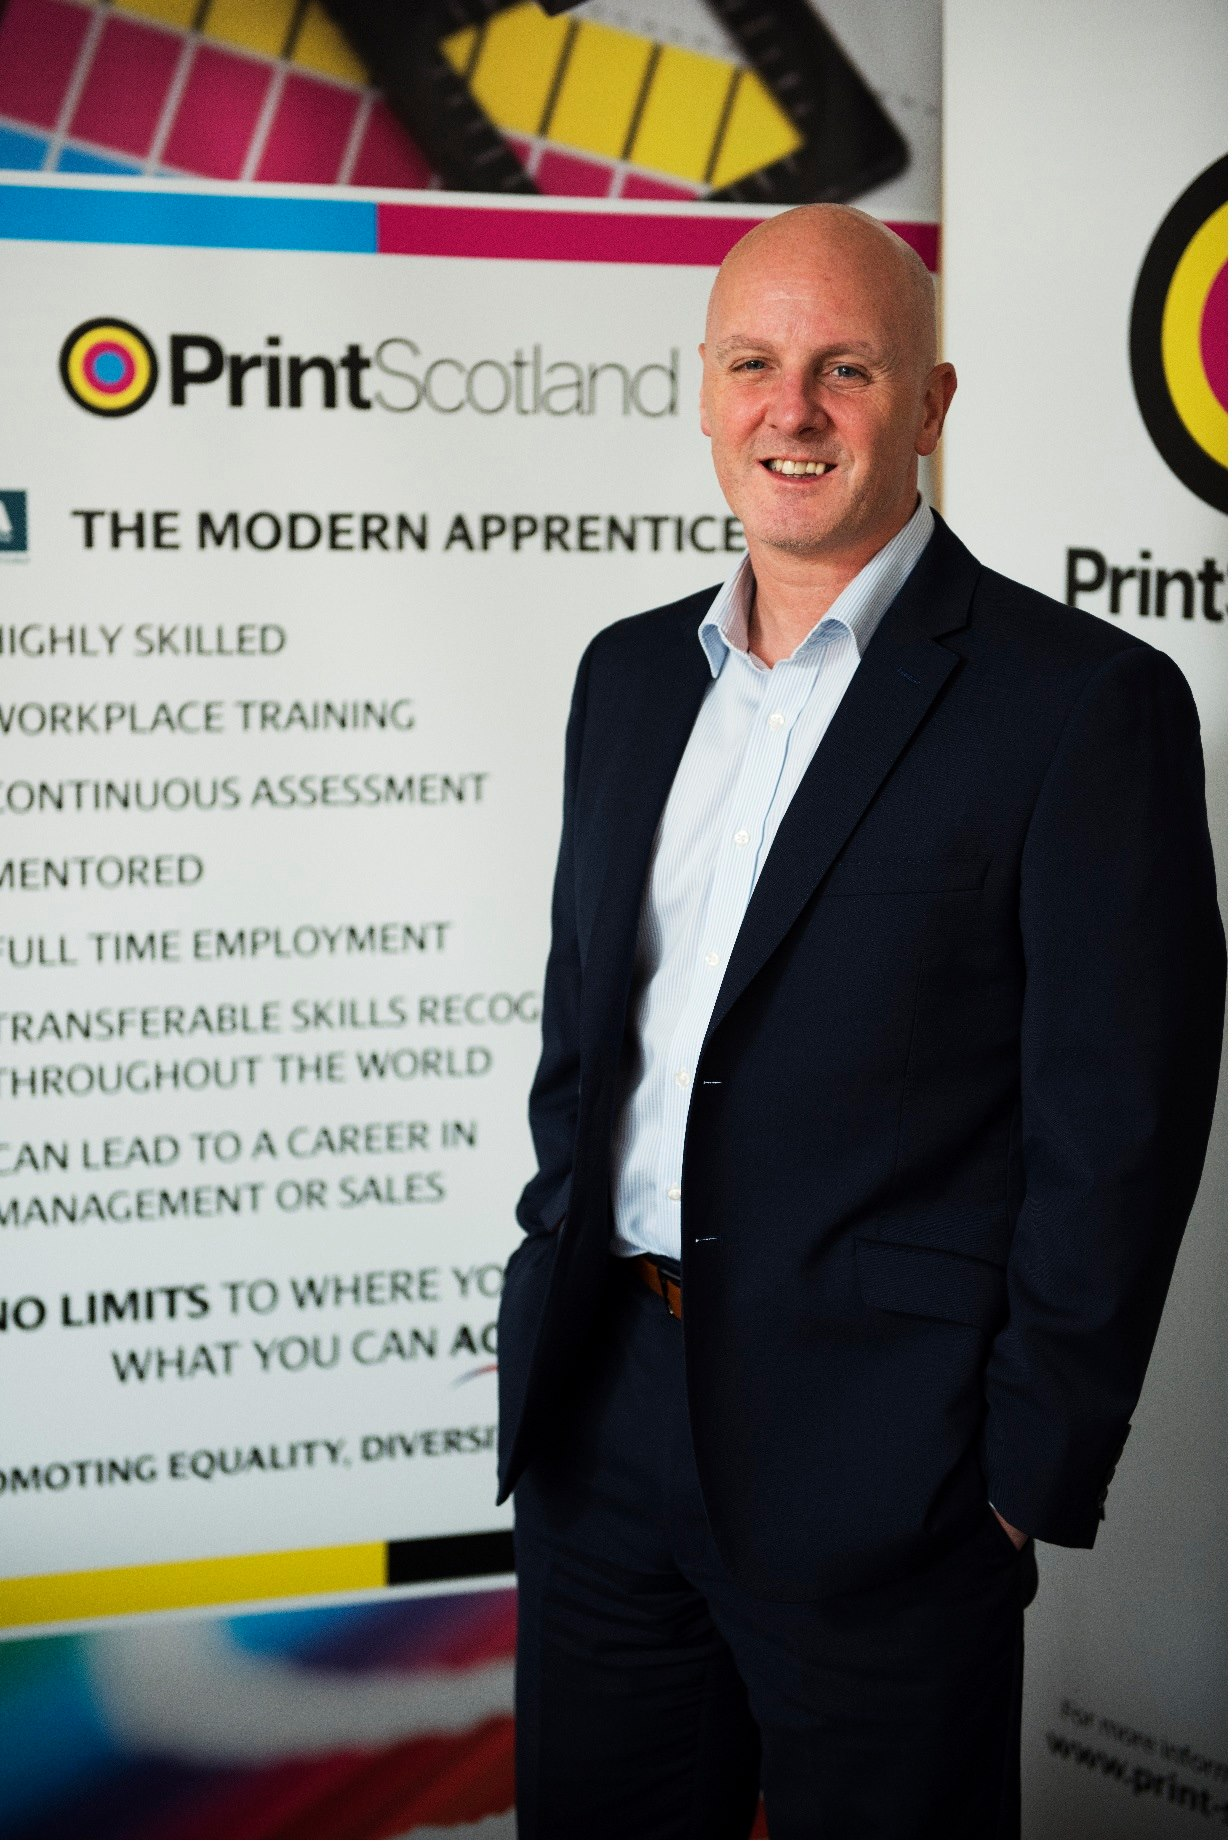 Kevin Creechan, President of Print Scotland